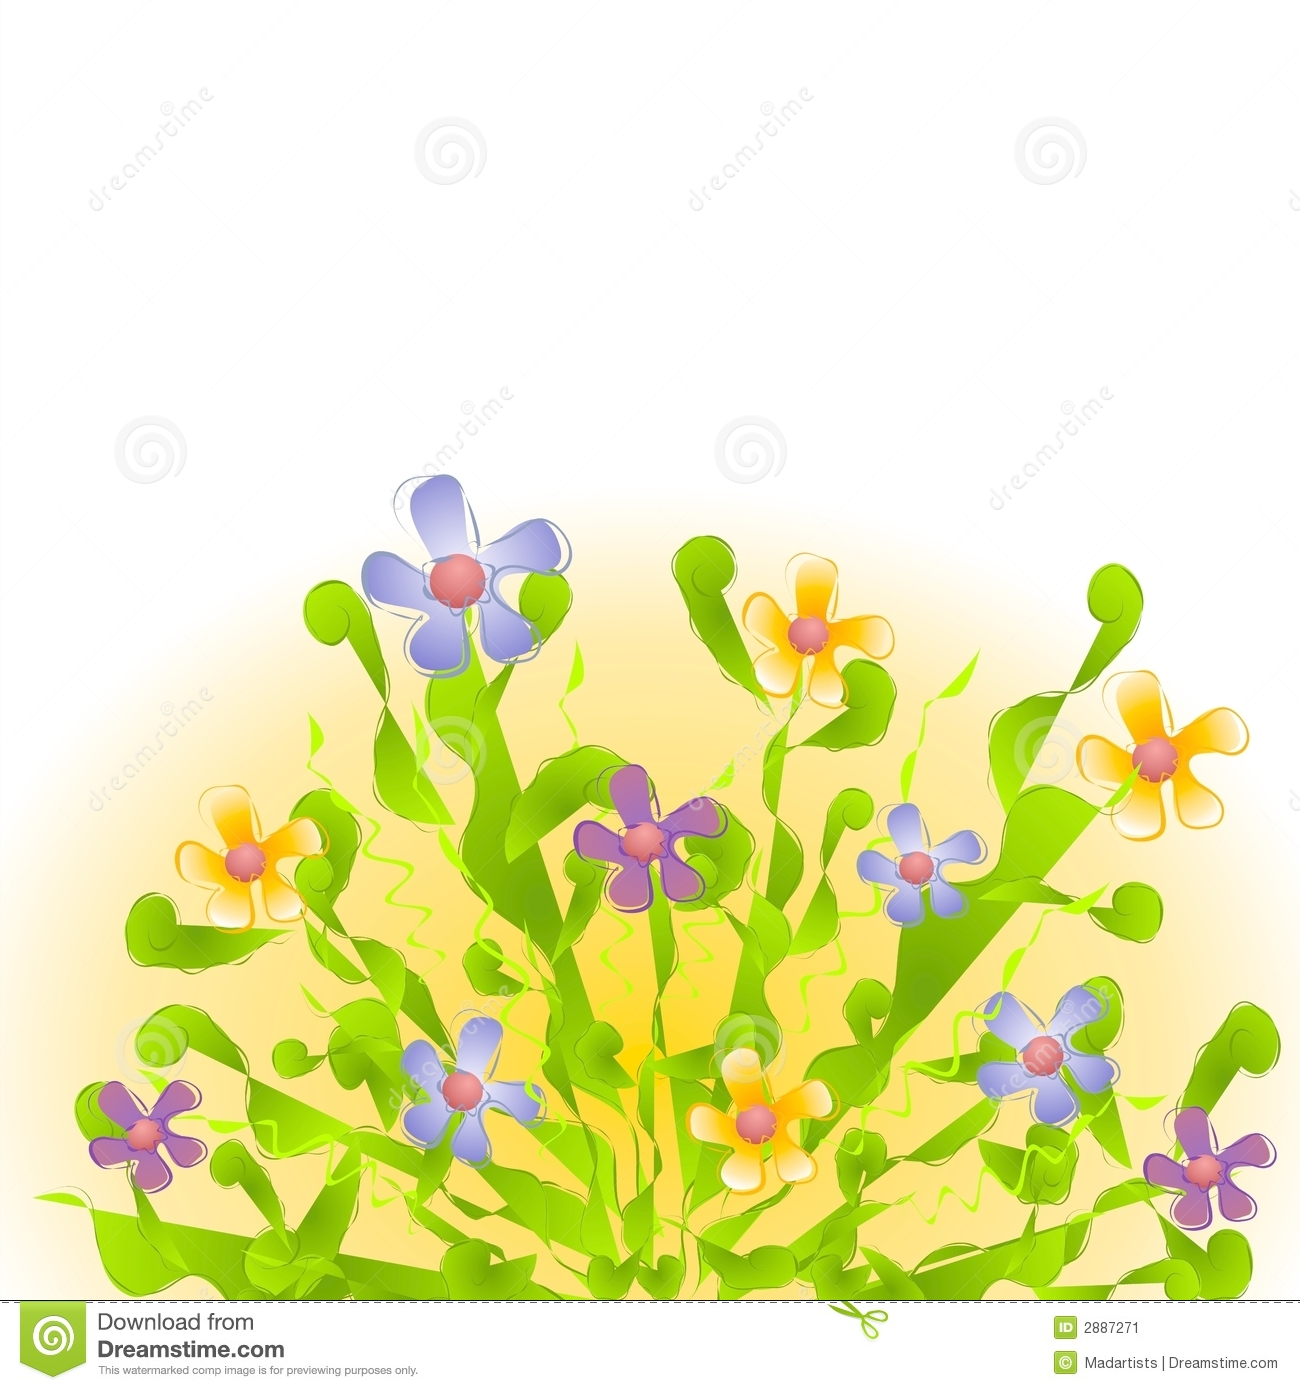 clipart gratuit nature - photo #16